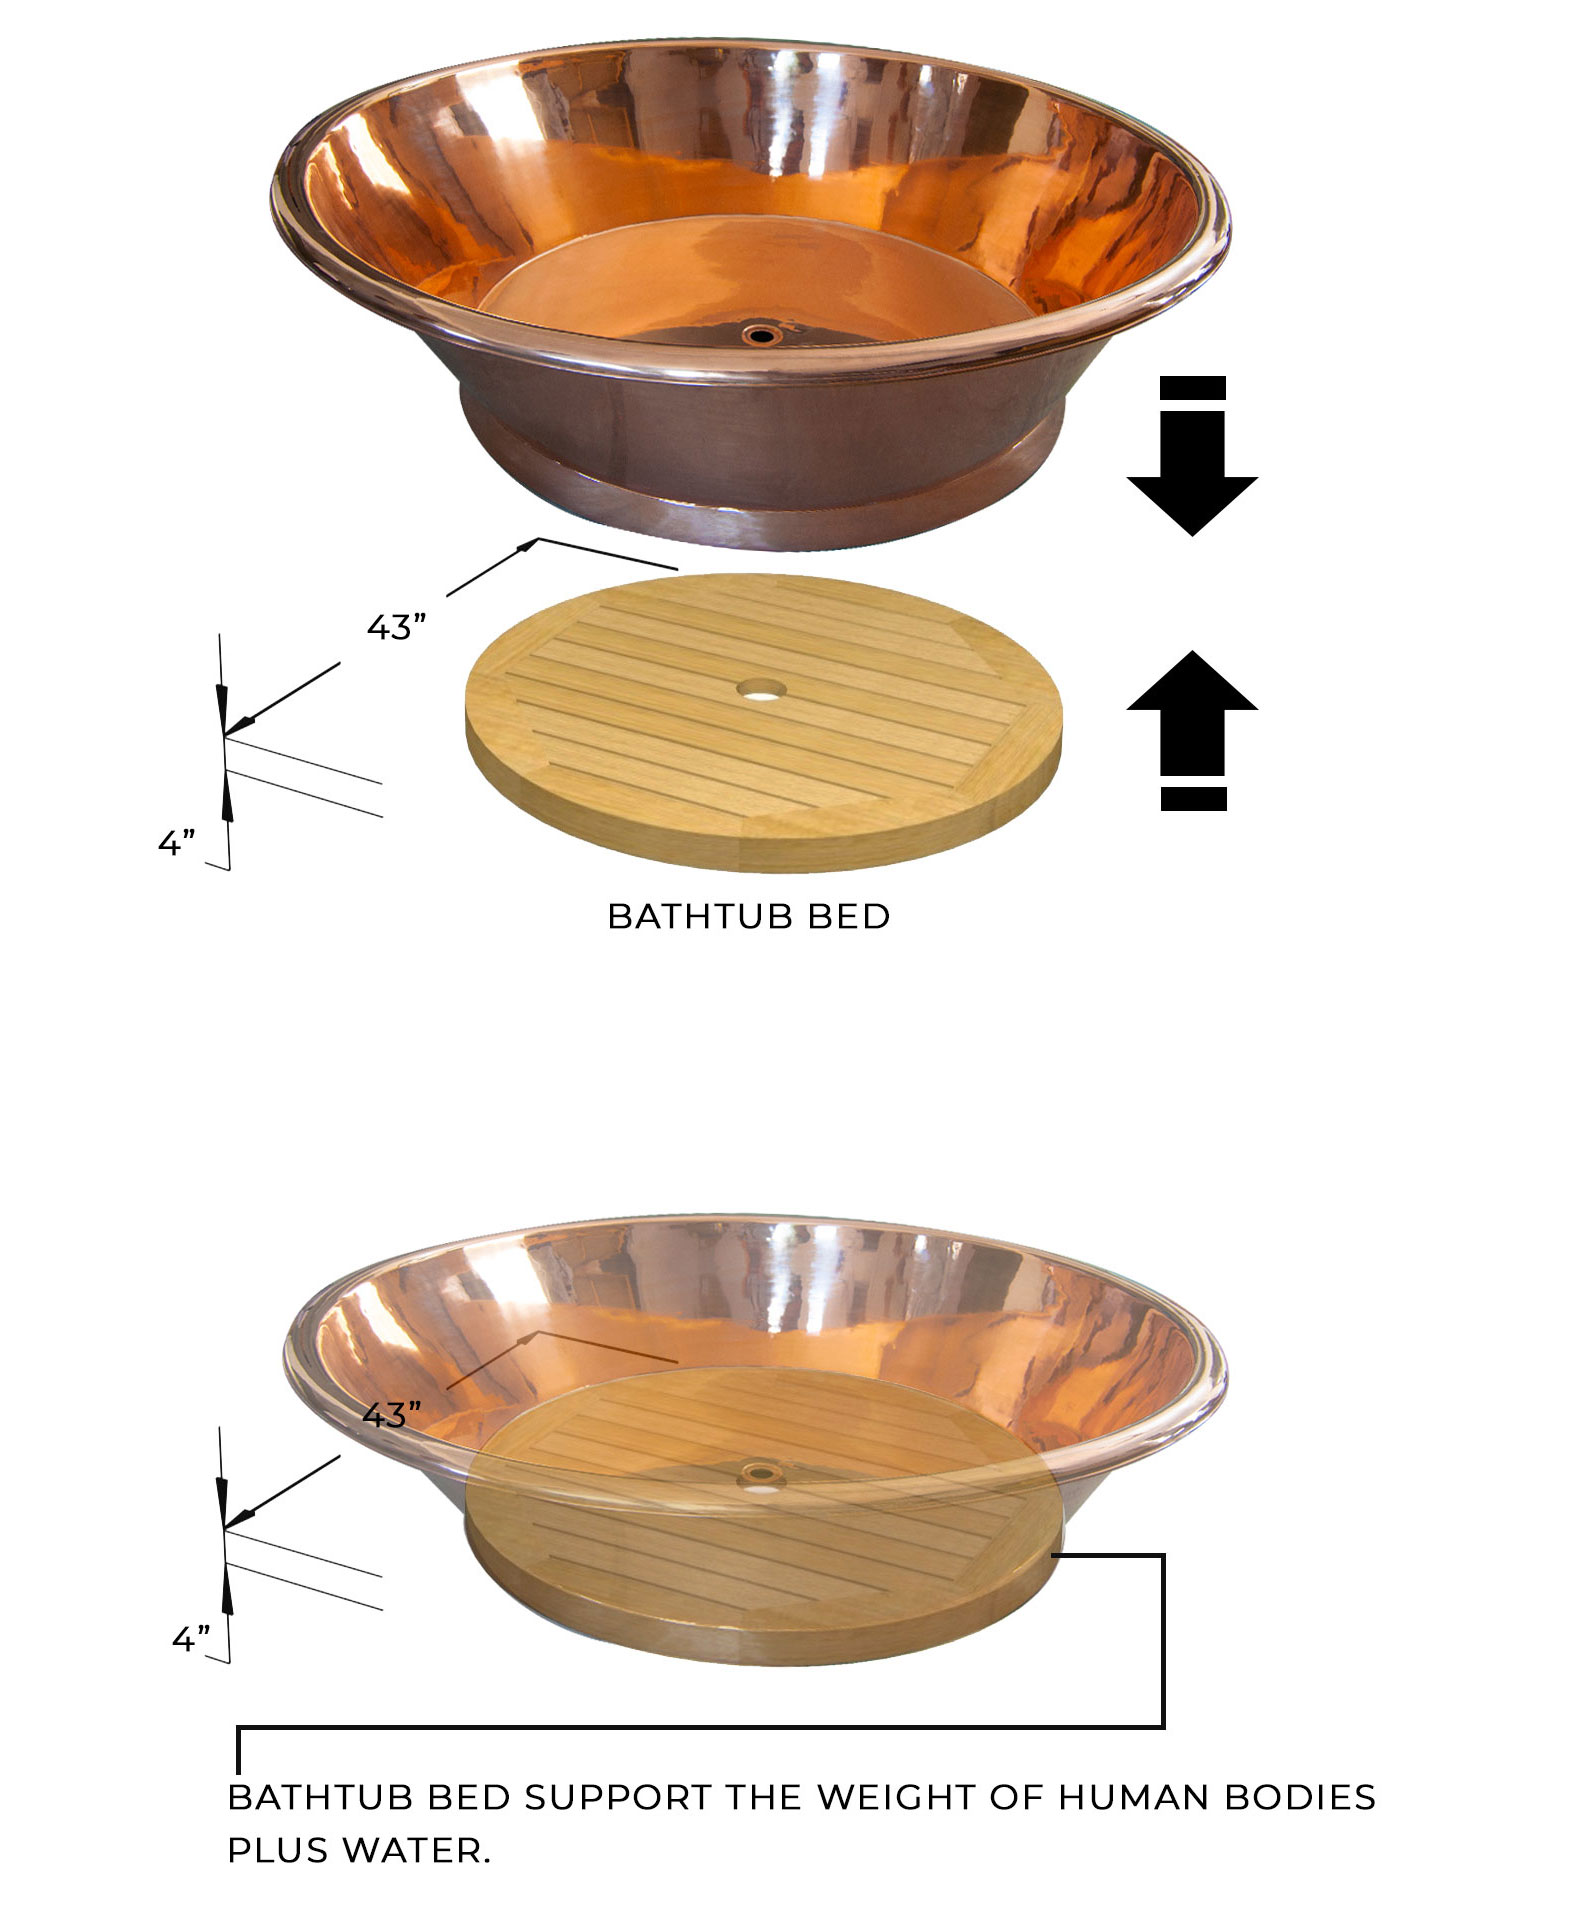 Round Copper Bathtub Bed